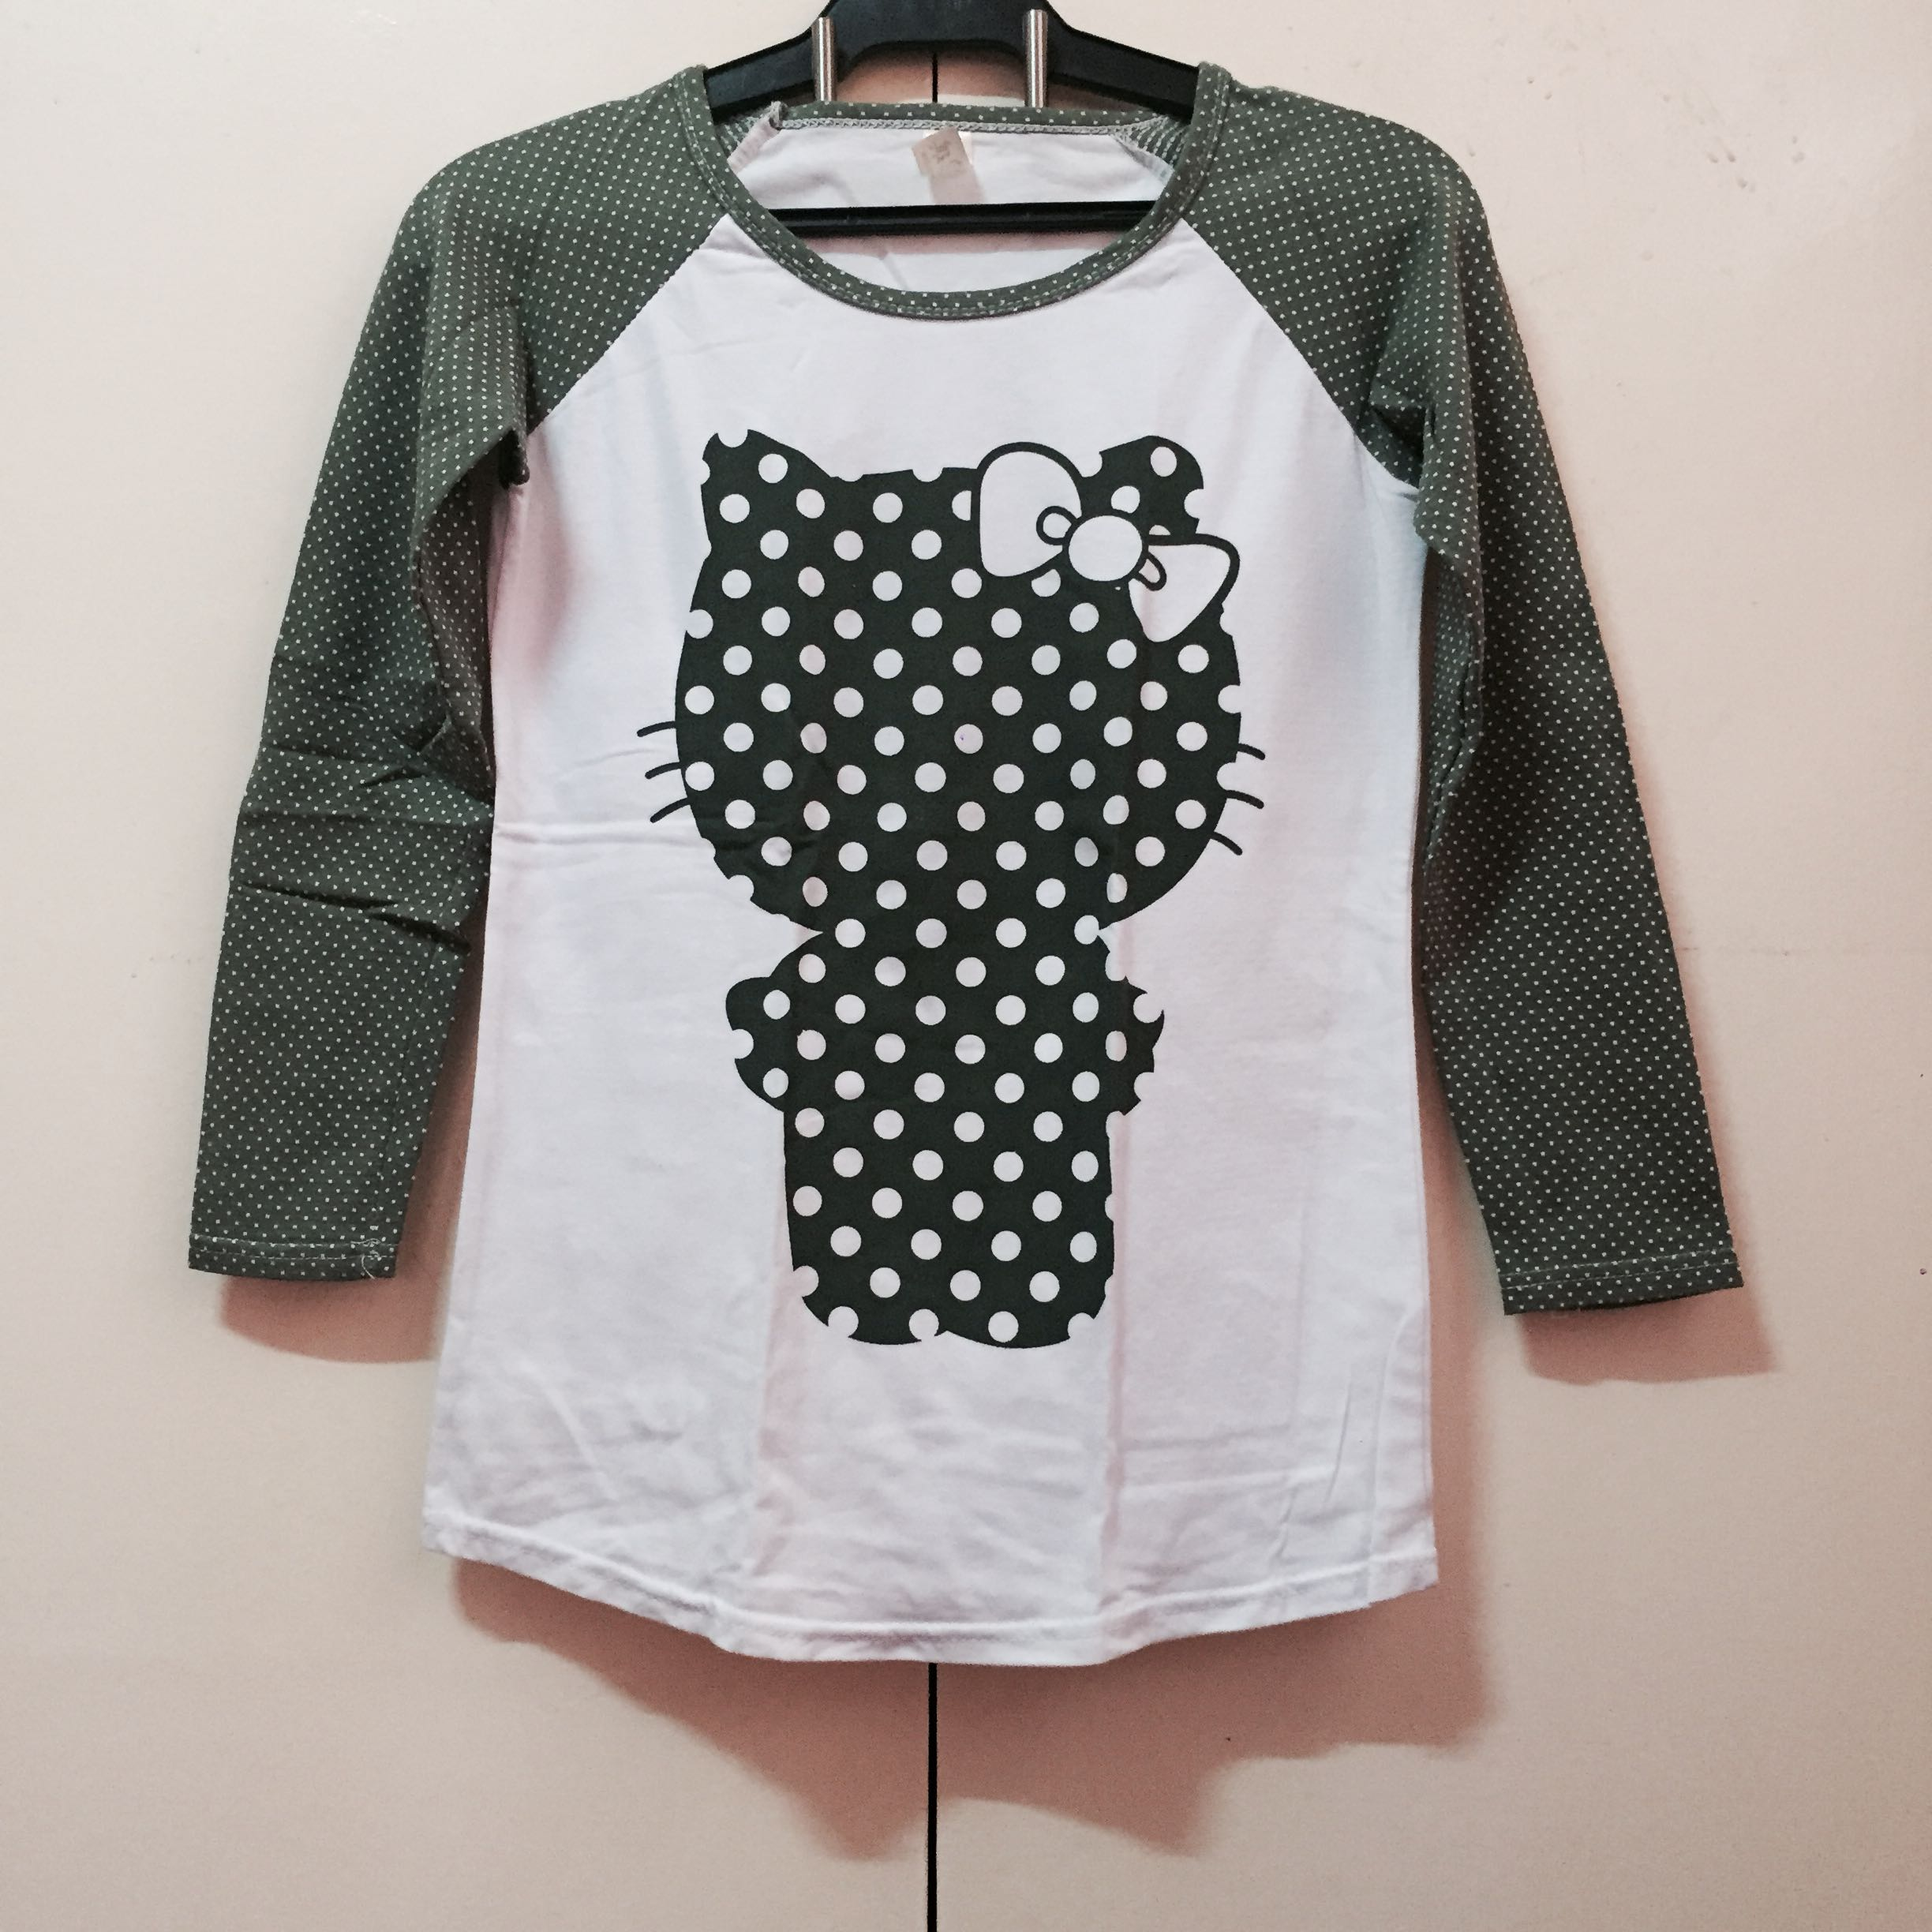 b2ca8ccf9 Green hello kitty top, Women's Fashion, Clothes, Tops on Carousell